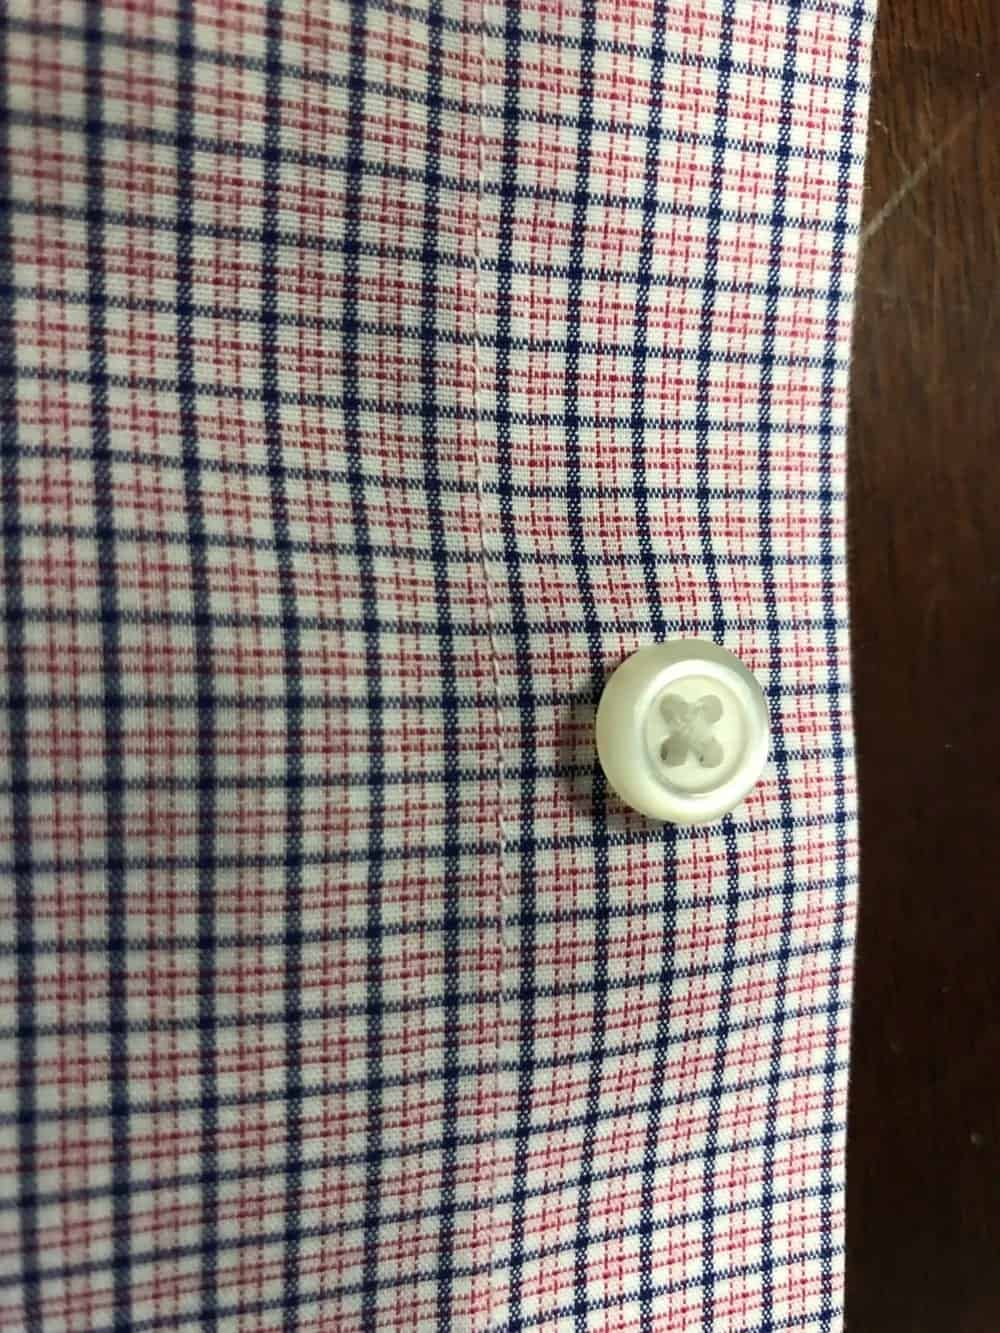 Close up photo of the buttons used on Banana Republic men's slim fit non-iron dress shirt.